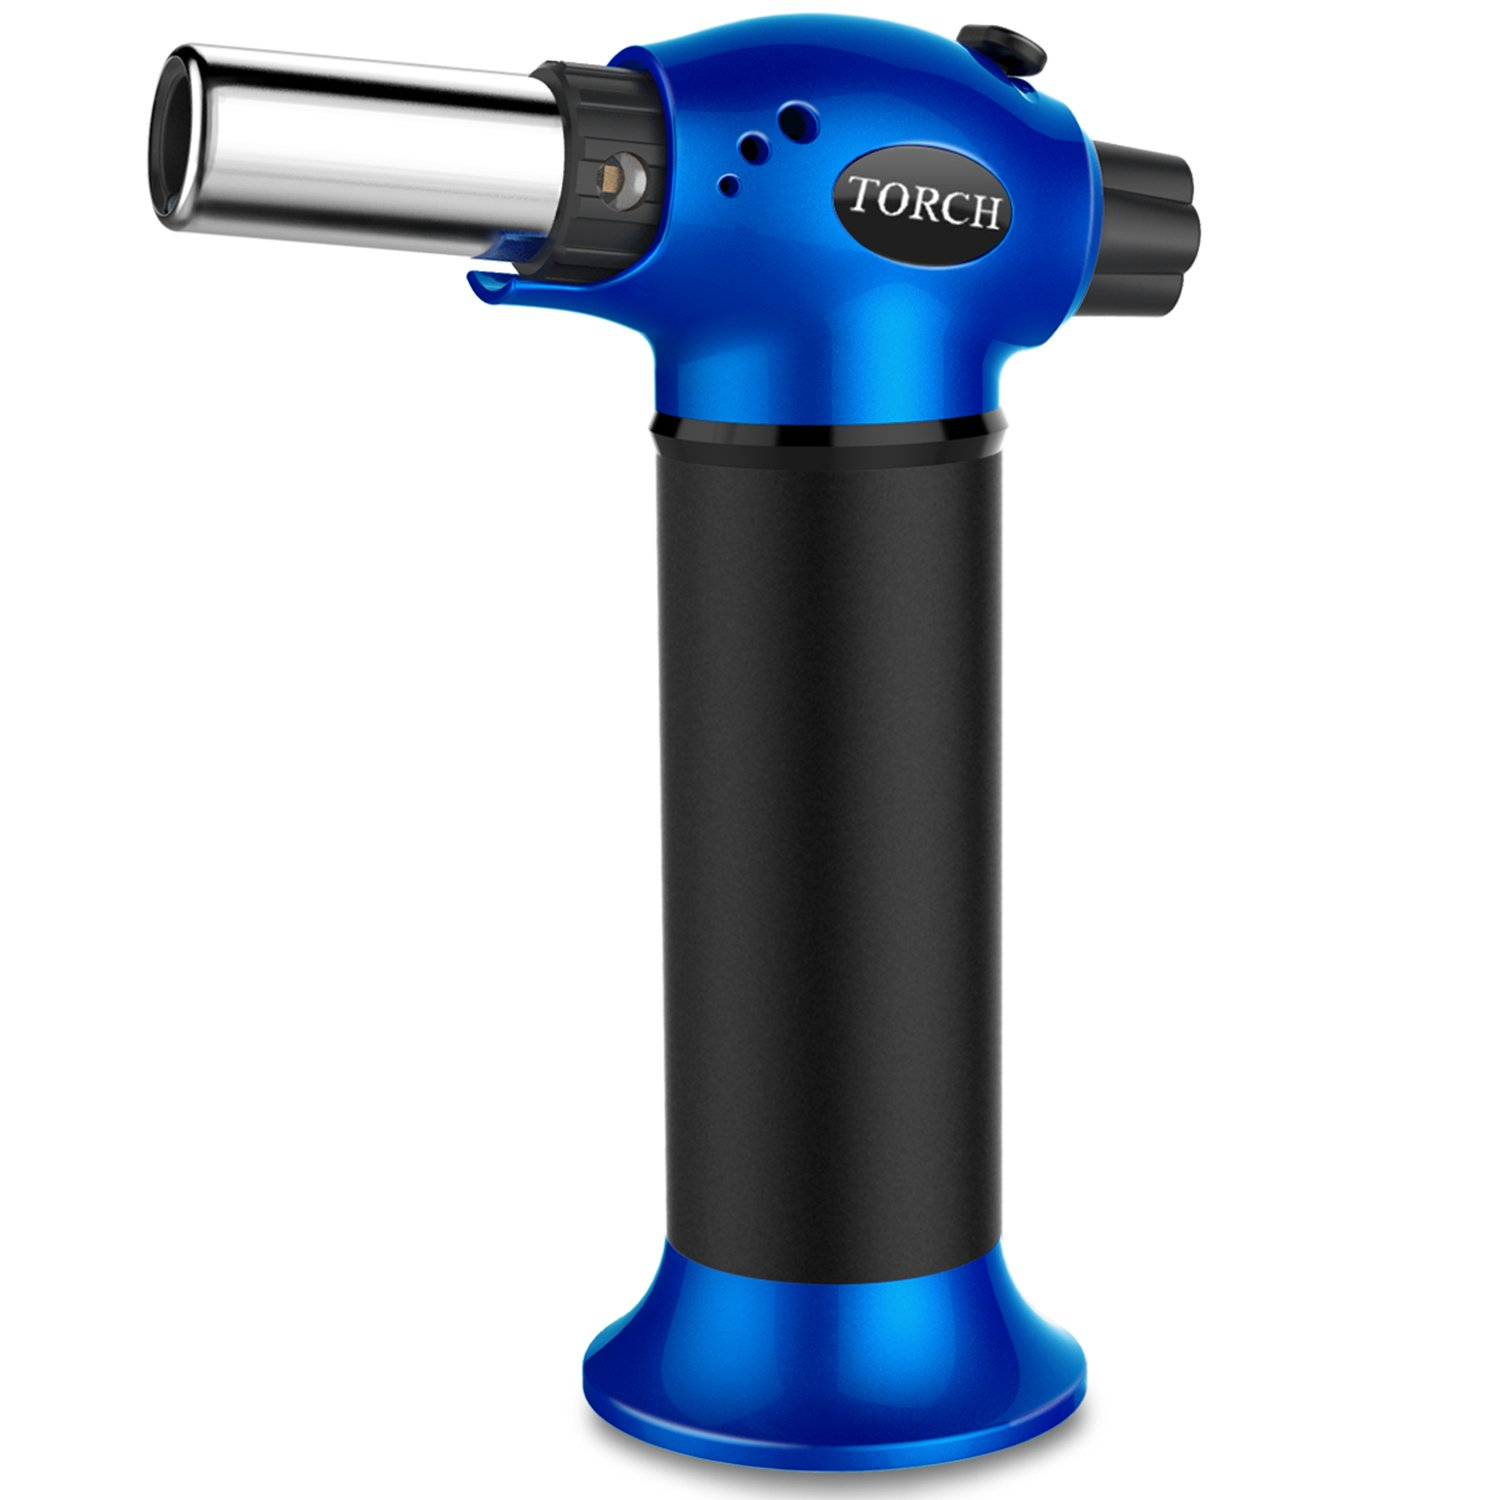 LUCKEA Blow Torch Lighter Kitchen Butane Culinary Torch Chef Cooking Torch Refillable Adjustable Flame Lighter with Two Type of Flame and Safety Lock and for Crème Brûlée, BBQ and Baking - Blue